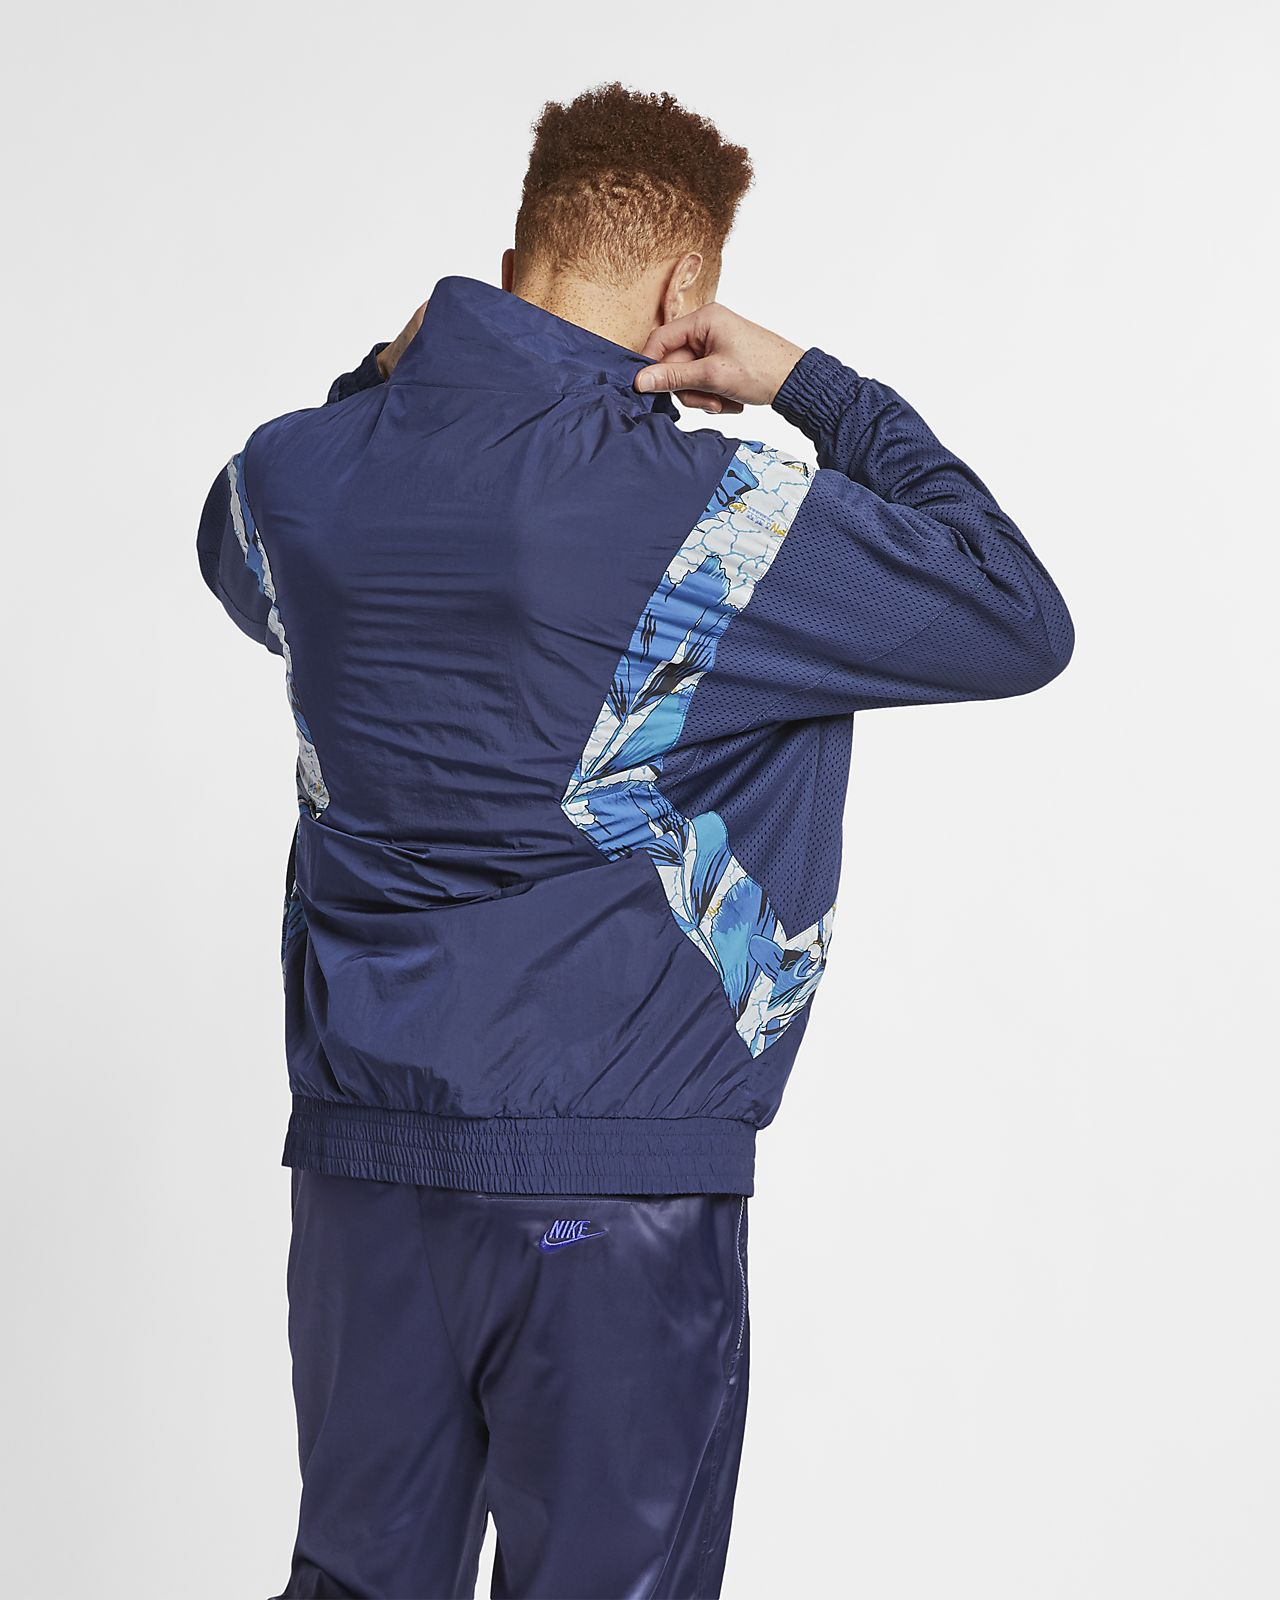 c86fe0bfced006 Jordan x RW Flight Men s Jacket. Nike.com IL